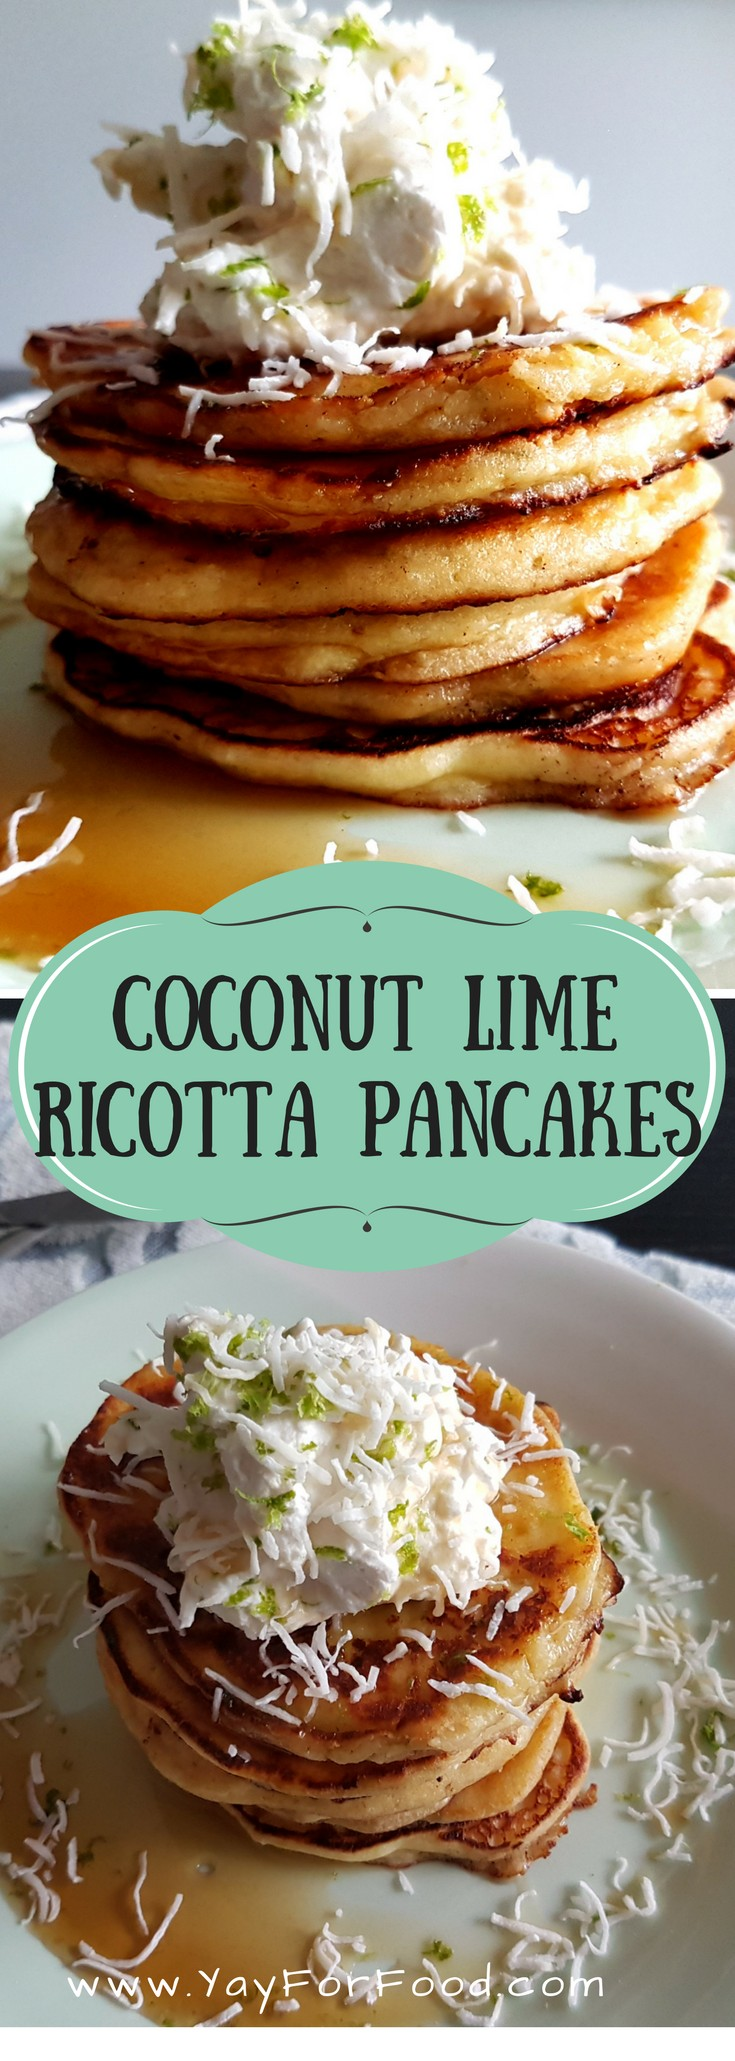 Fluffy, warm goodness. This easy pancake recipe is a little different from the traditional pancake recipes, but worth it. The coconut and lime gives the pancake a fresh taste, the outside is crispy and buttery, and the ricotta gives the insides a light, airy texture.